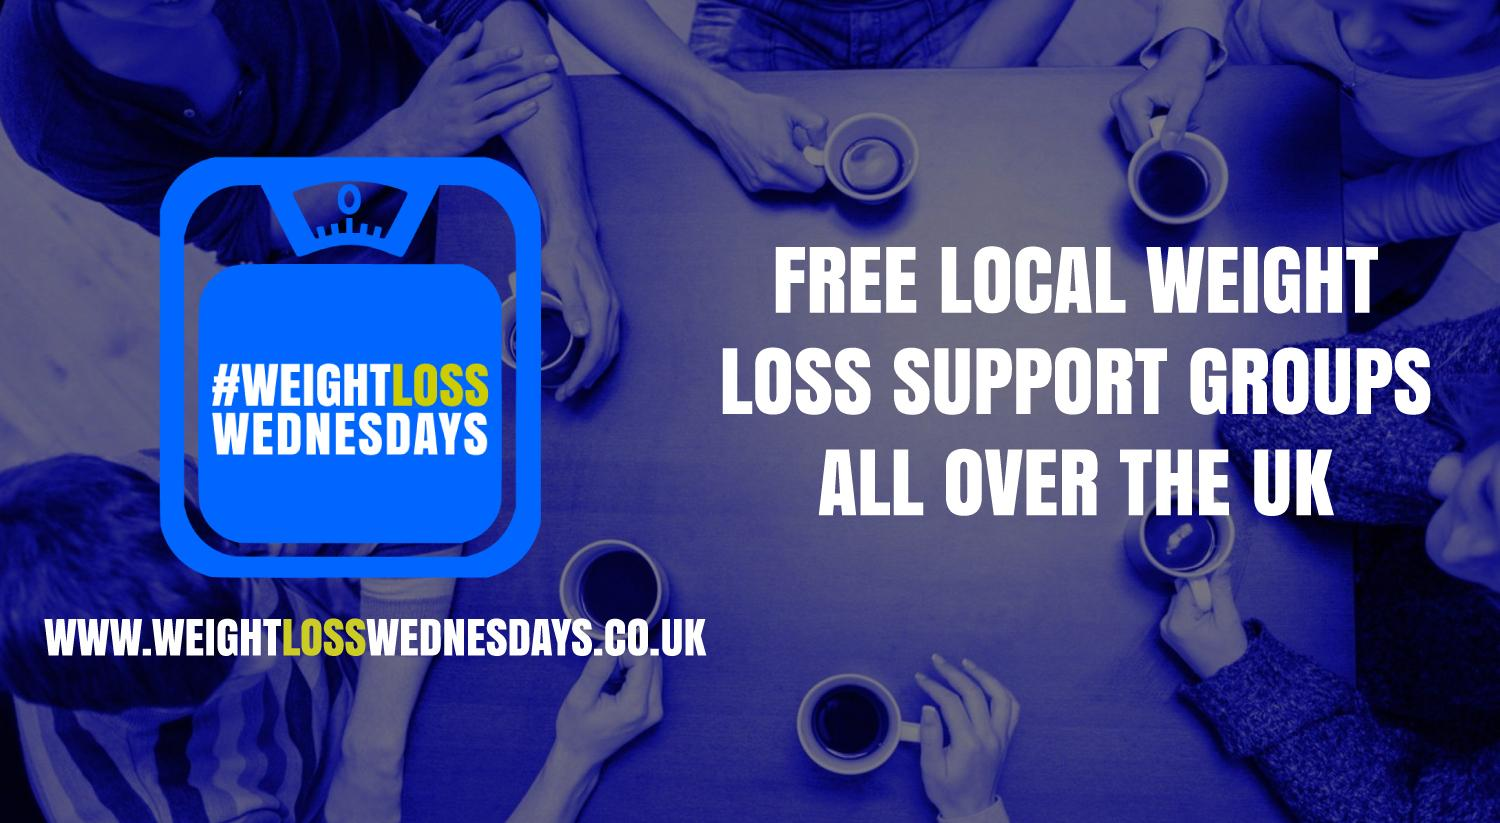 WEIGHT LOSS WEDNESDAYS! Free weekly support group in London